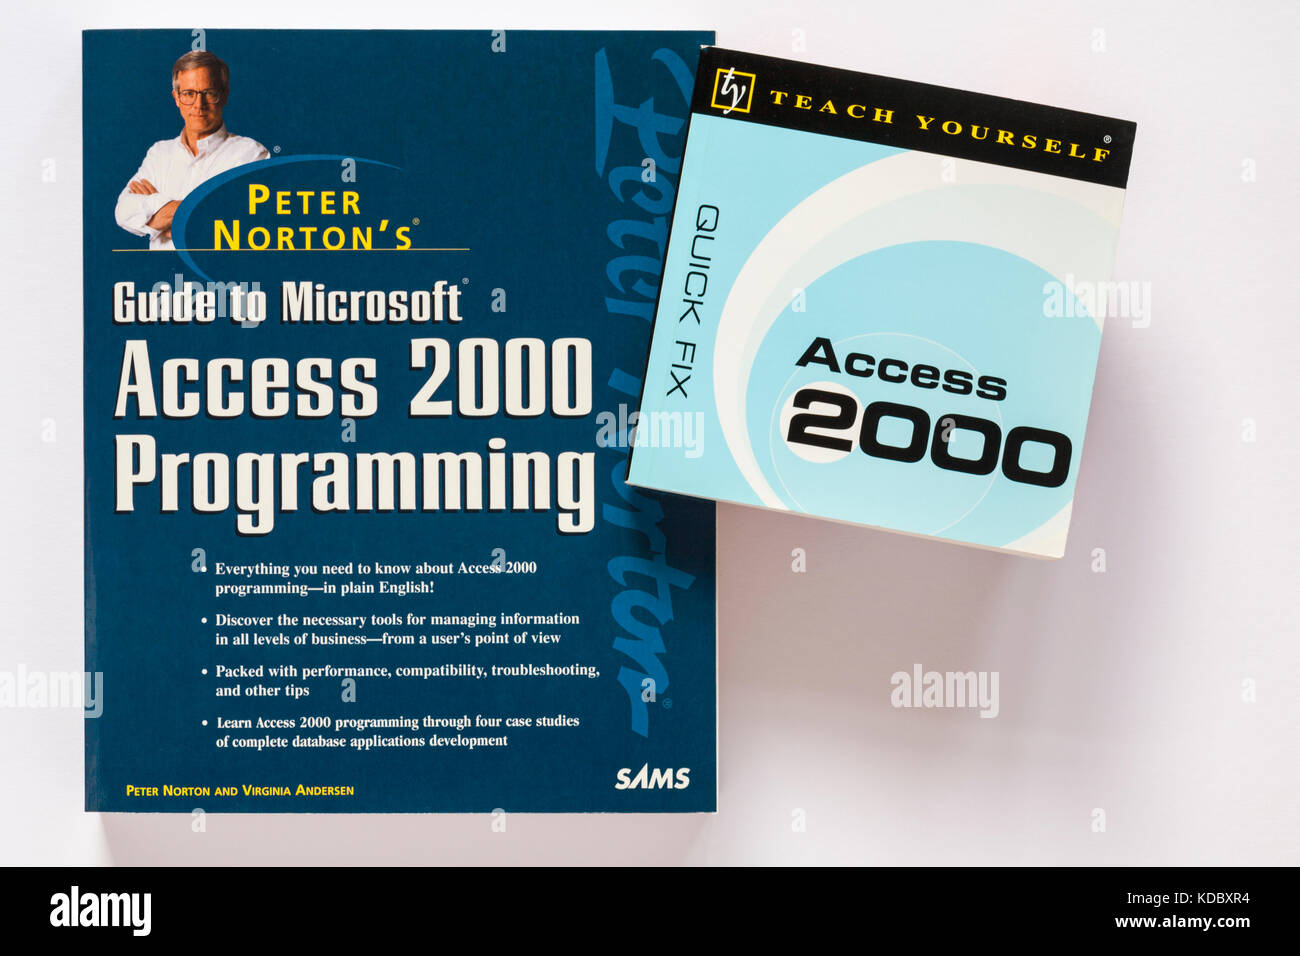 Peter Norton's Guide to Microsoft Access 2000 Programming and teach yourself quick fix access 2000 books on - Stock Image